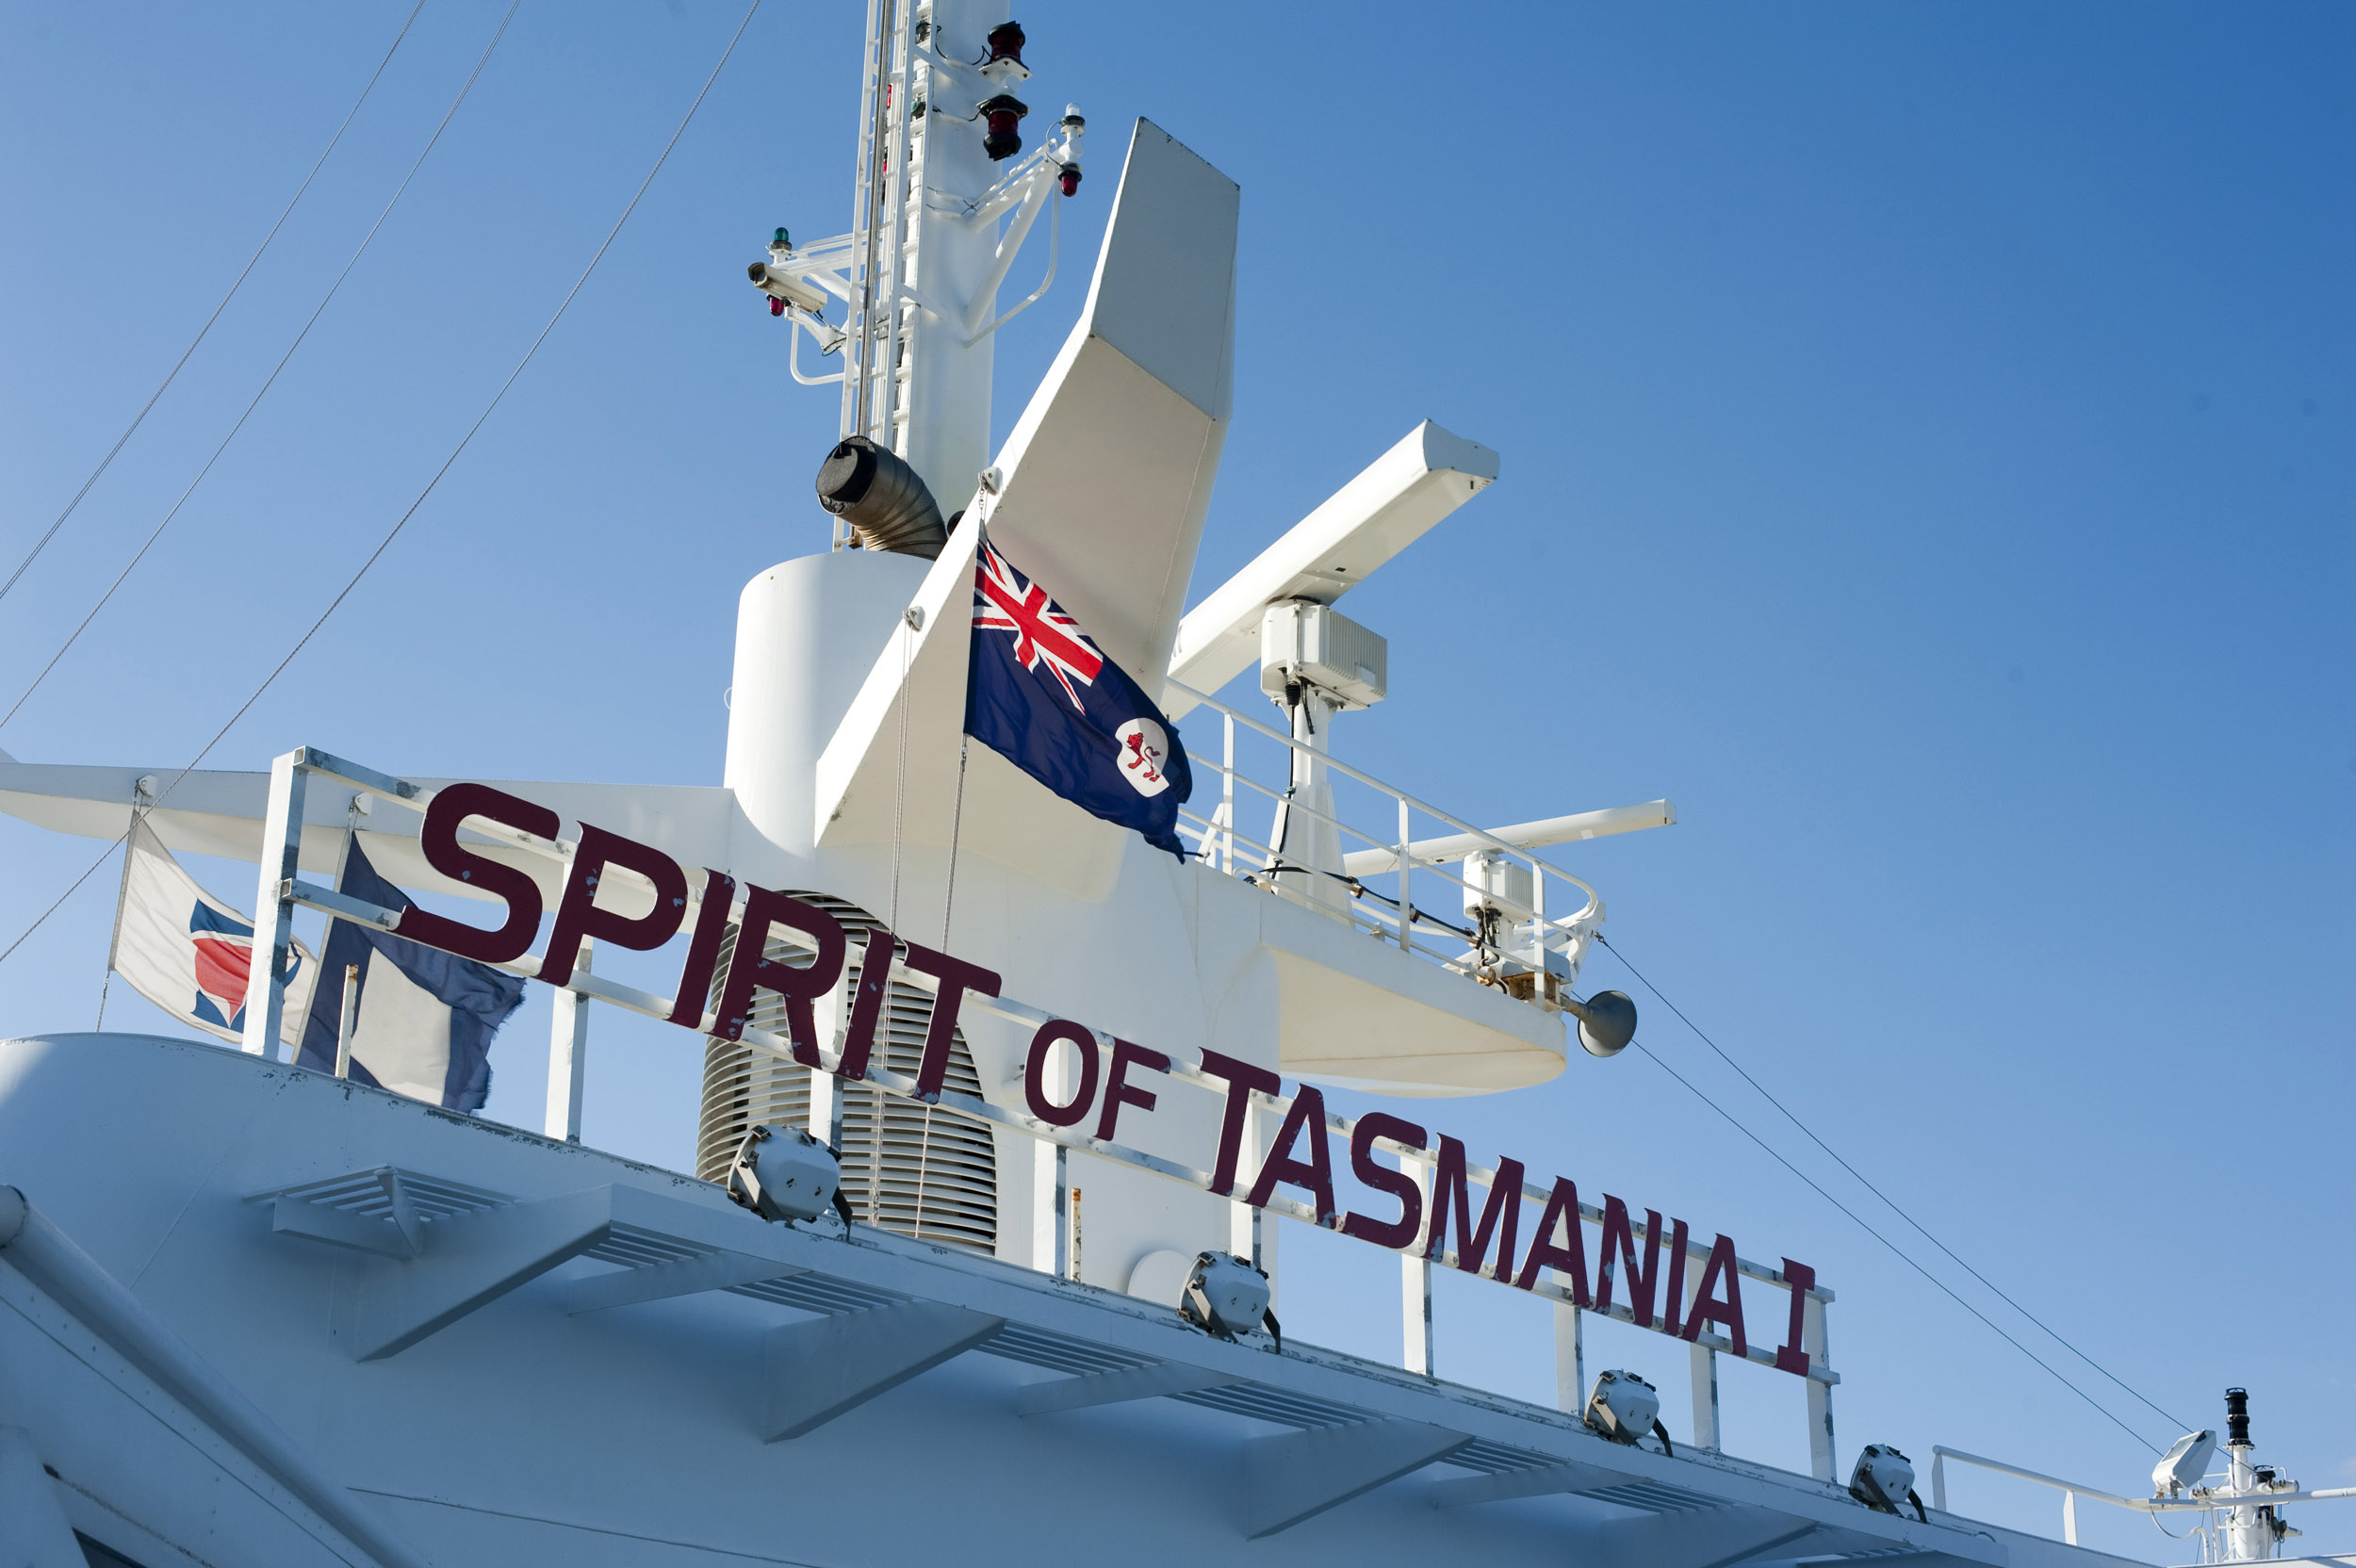 A close up of the Australian flag, radar and sonar equipment on the Spirit of Tasmania ferry in Australia.